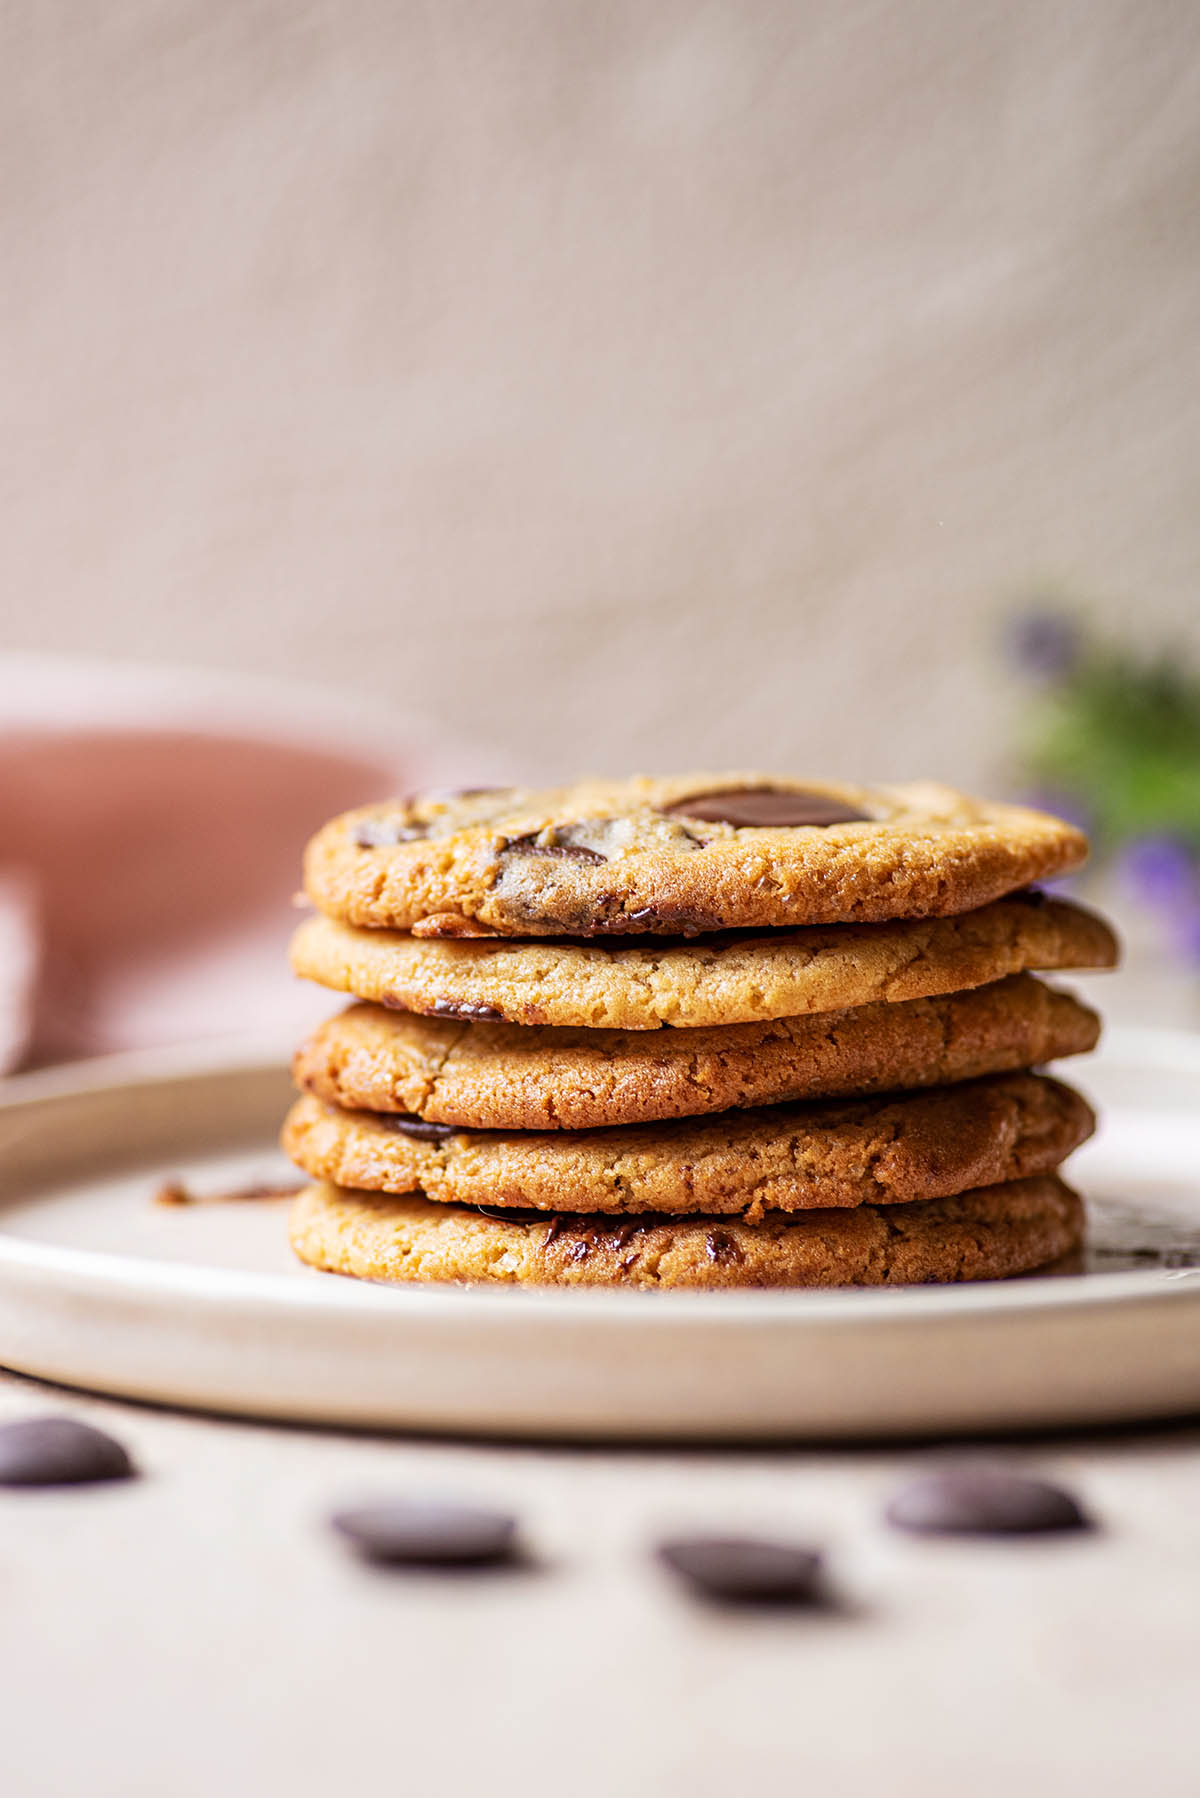 A stack of cookies on a plate.